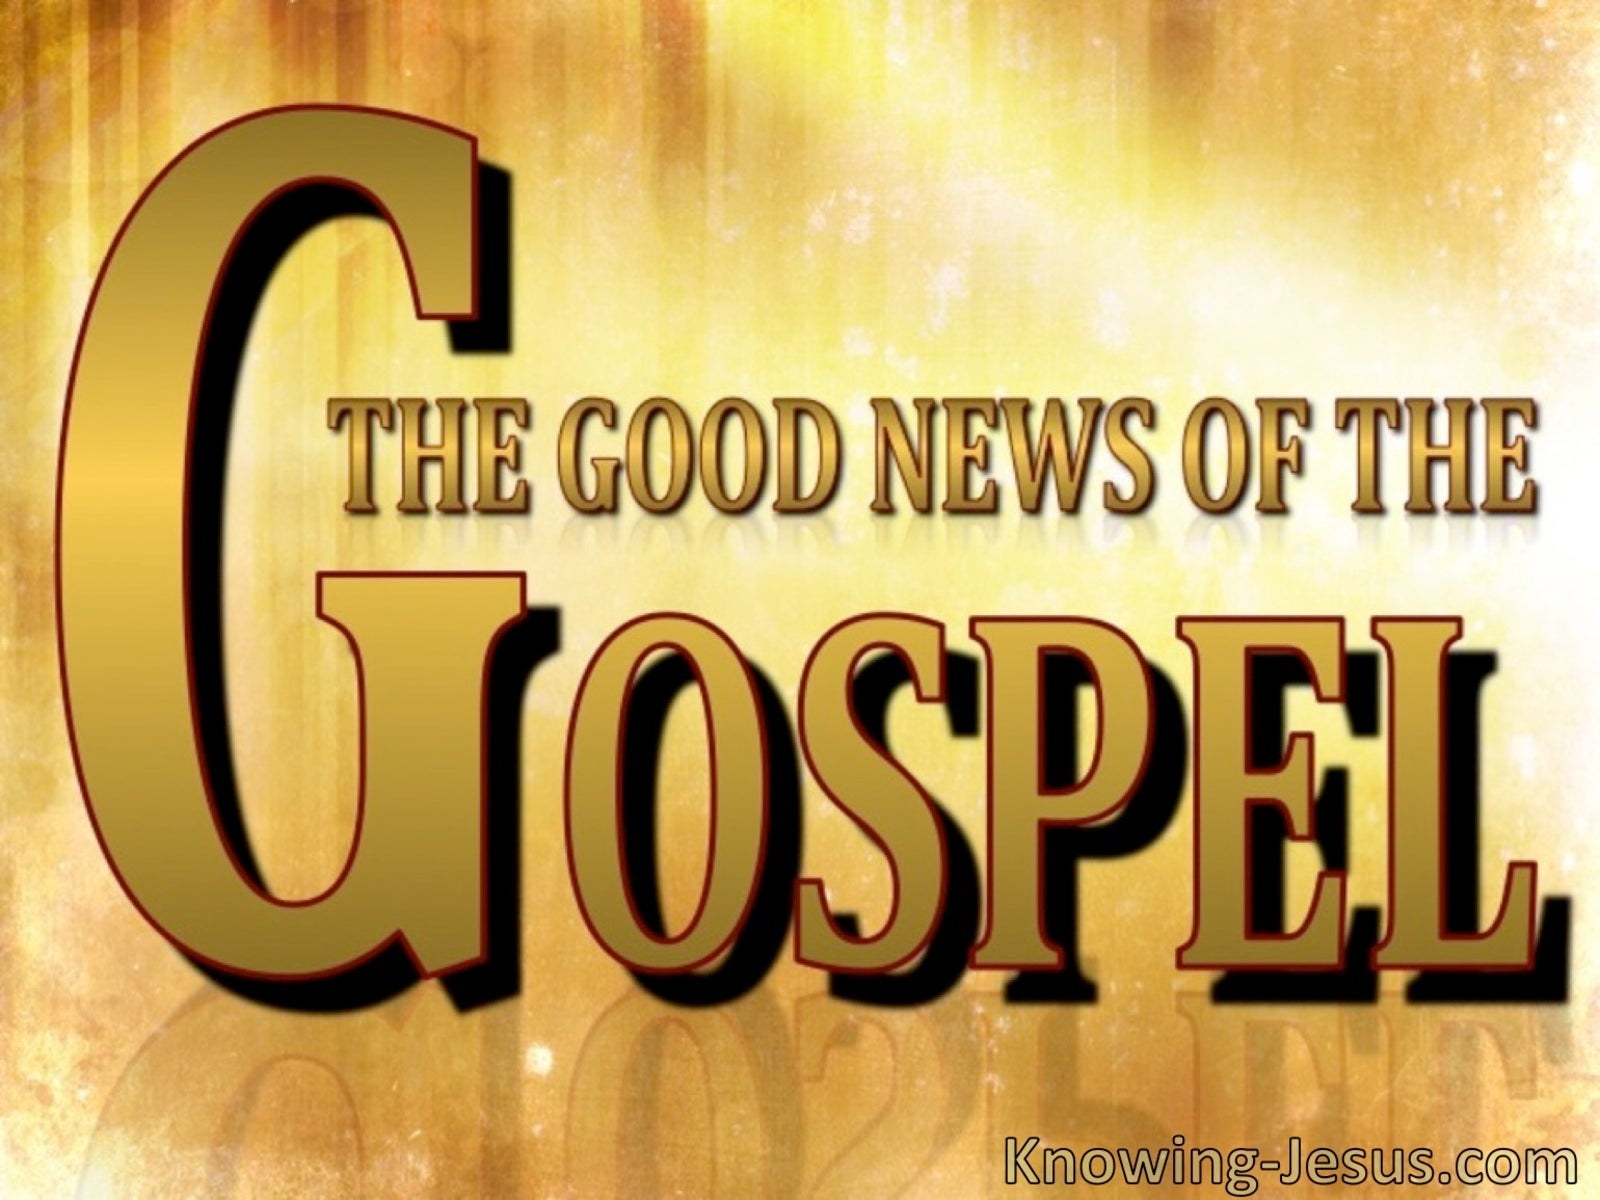 The Good News of the Gospel (devotional)  - 1 Thessalonians 4:14